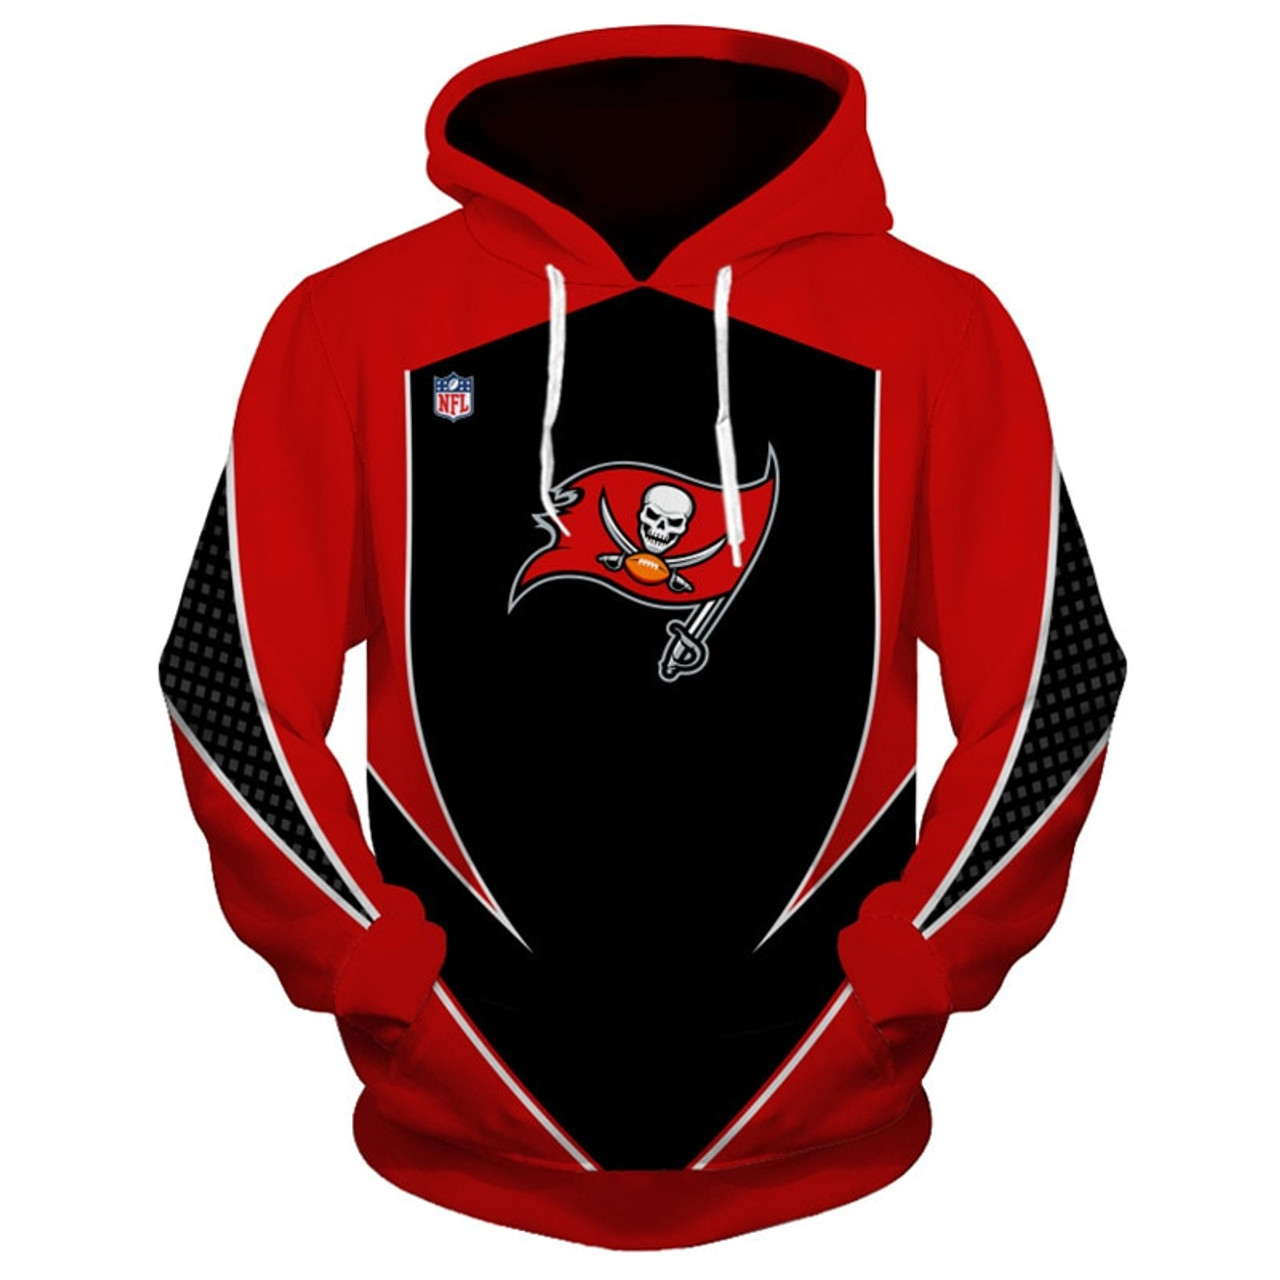 official n f l tampa bay buccaneers team pullover hoodies new custom 3d graphic printed double sided designed official n f l tampa bay buccaneers team pullover hoodies new custom 3d graphic printed double sided designed all over official buccaneers logos